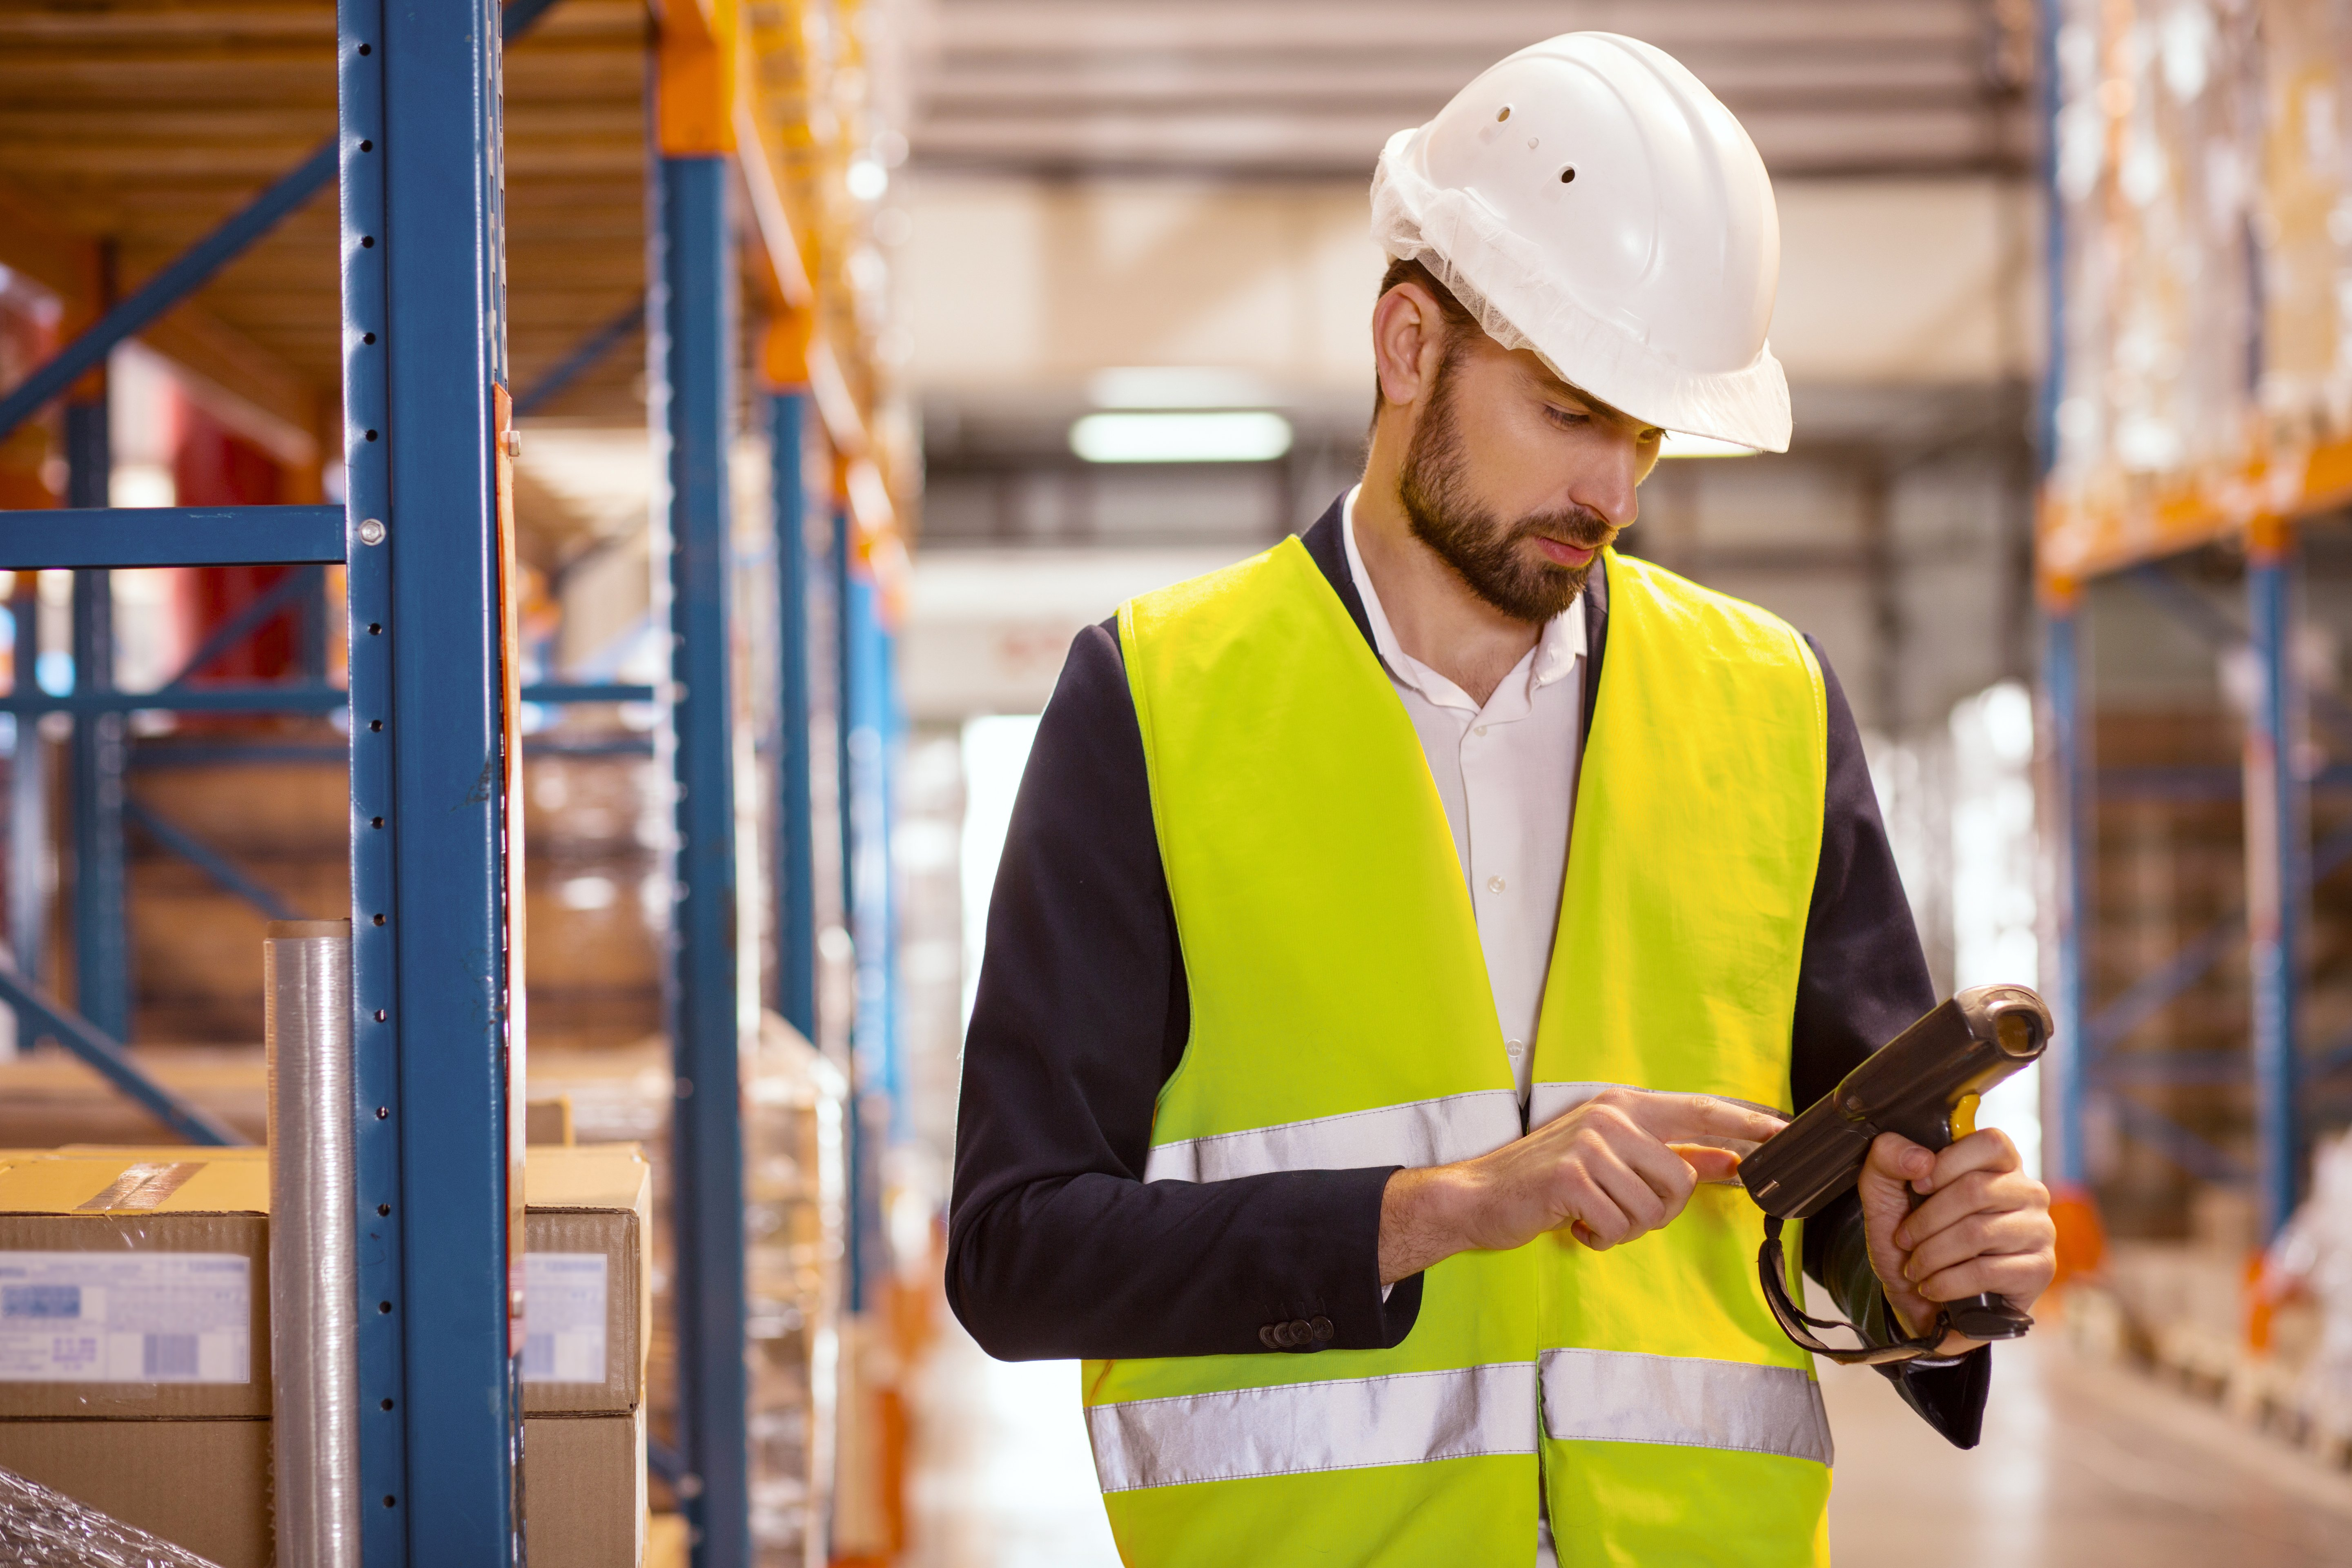 Inventory visibility in manufacturing